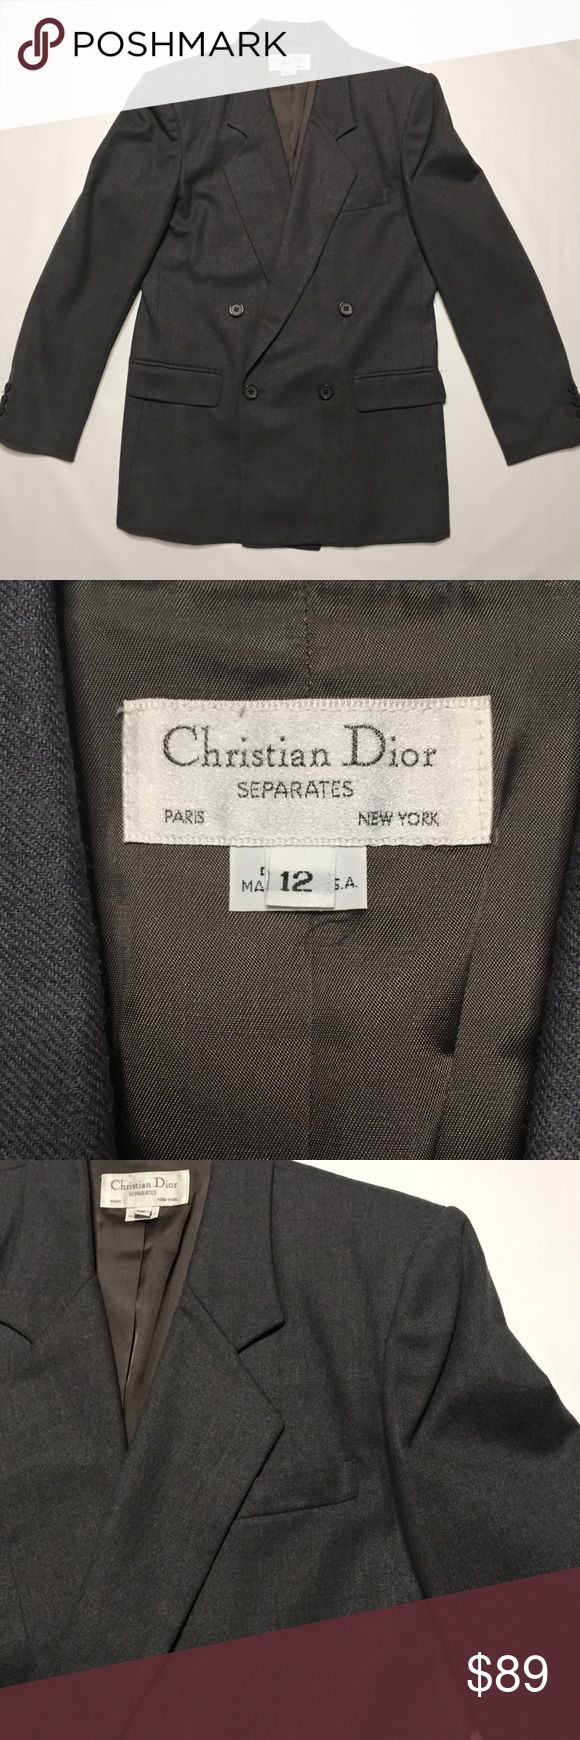 Vintage Christian Dior Gray Blazer EUC 1980's wool Christian Dior suit separate blazer. Sz 12. Gray. Measurements available upon request. Christian Dior Jackets & Coats Blazers